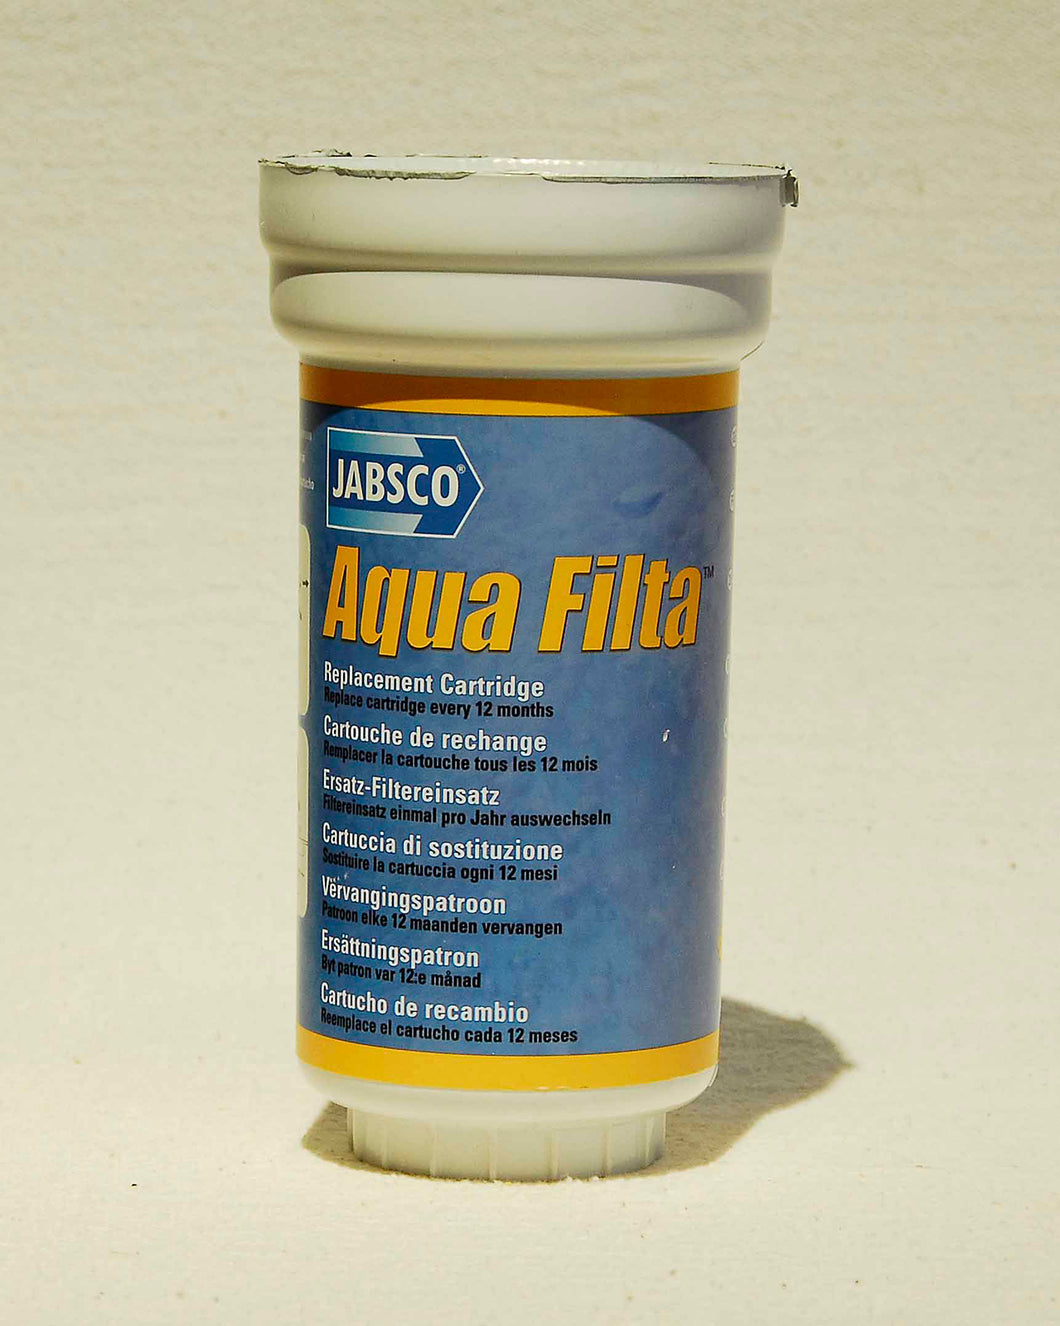 Replacememt Cartridge for Aqua Filta